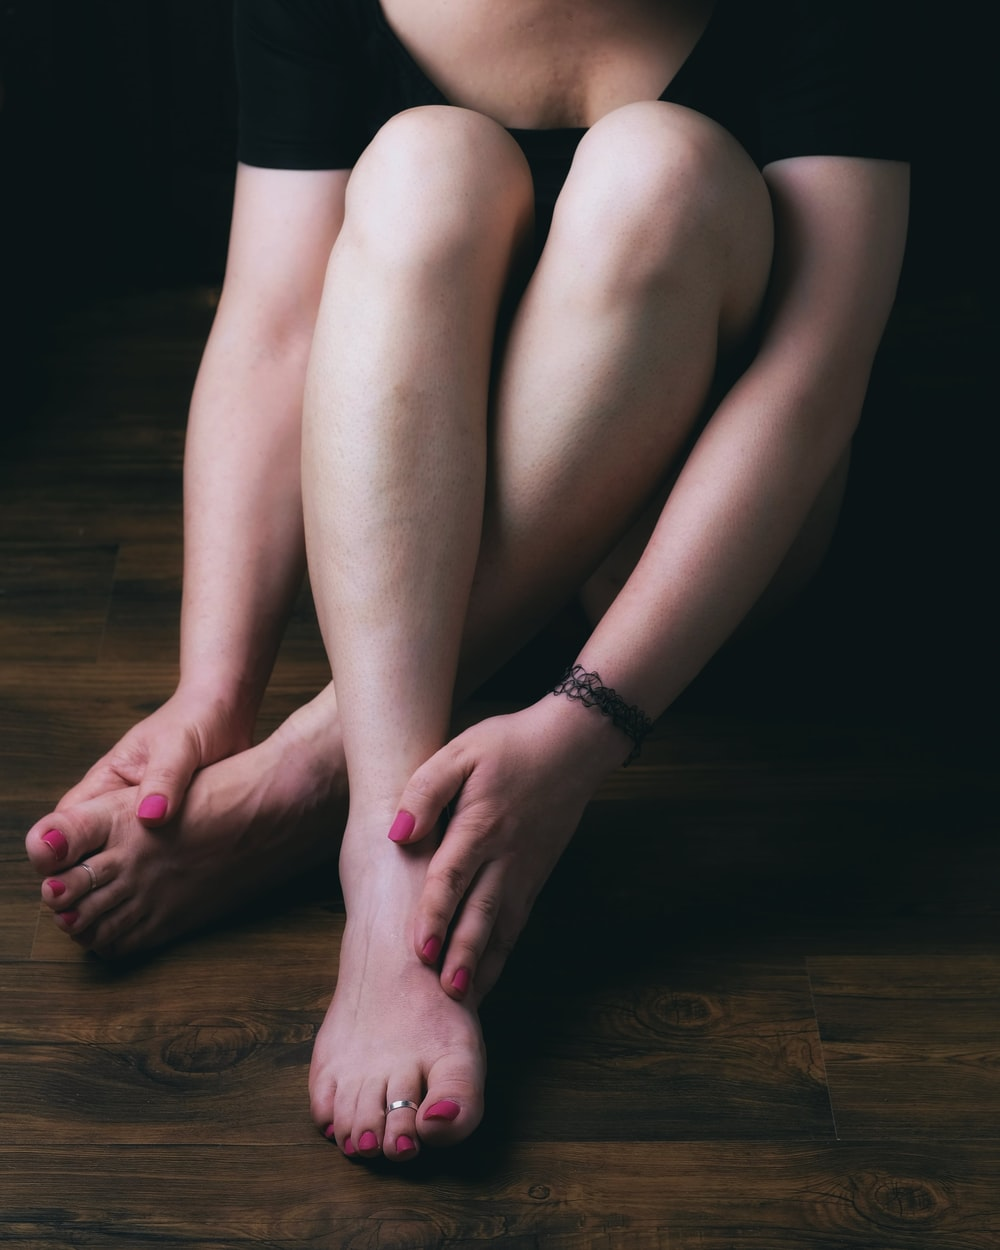 woman in black shorts sitting on brown wooden floor